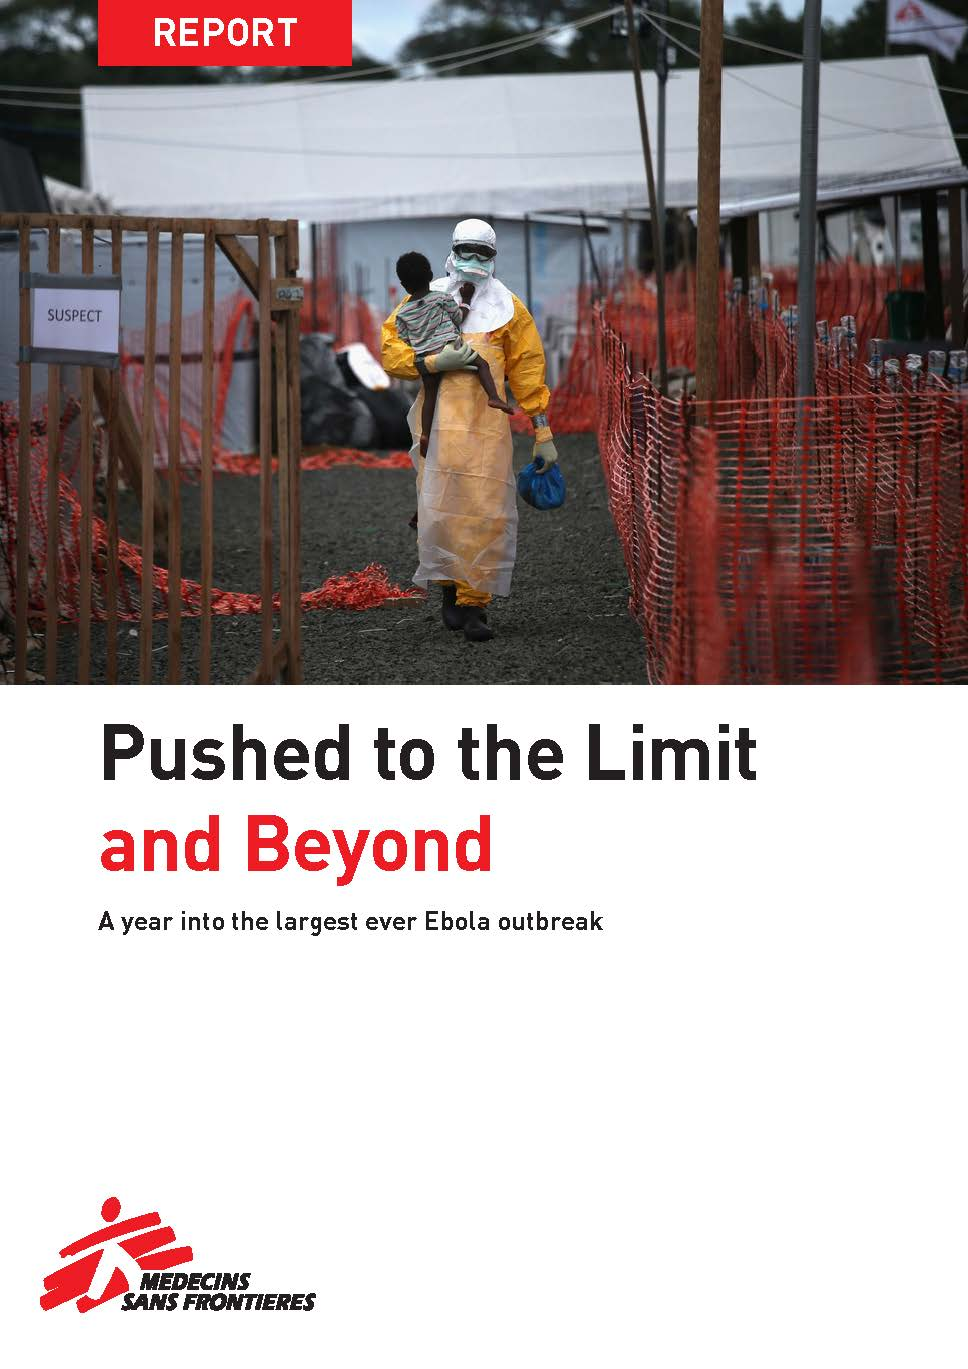 Pushed to the Limit and Beyond. A year into the largest Ebola outbreak.